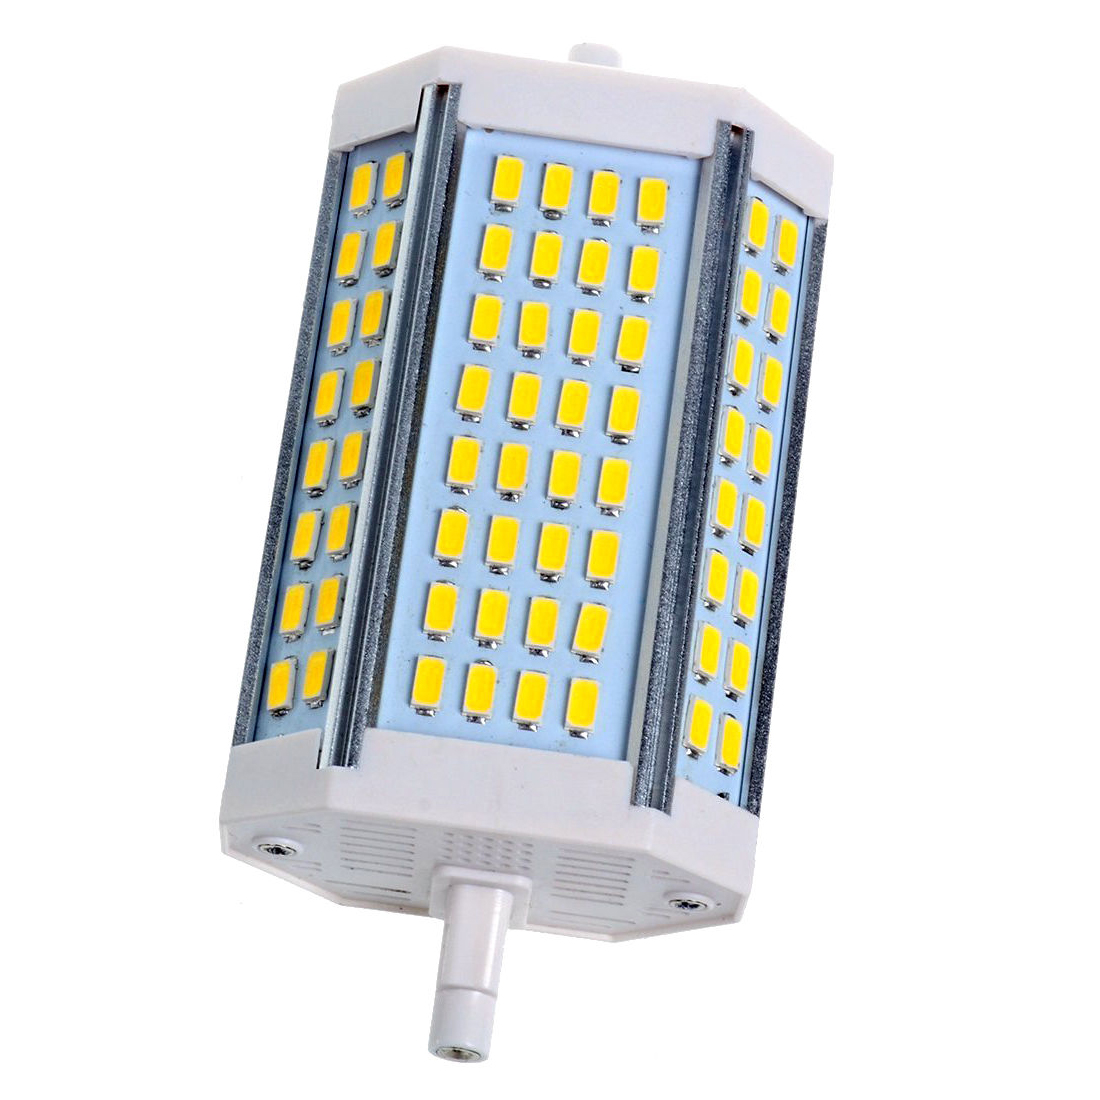 dimmbar r7s led 30w 360w j118 5630 smd leuchtmittel brenner fluter lampe licht ebay. Black Bedroom Furniture Sets. Home Design Ideas